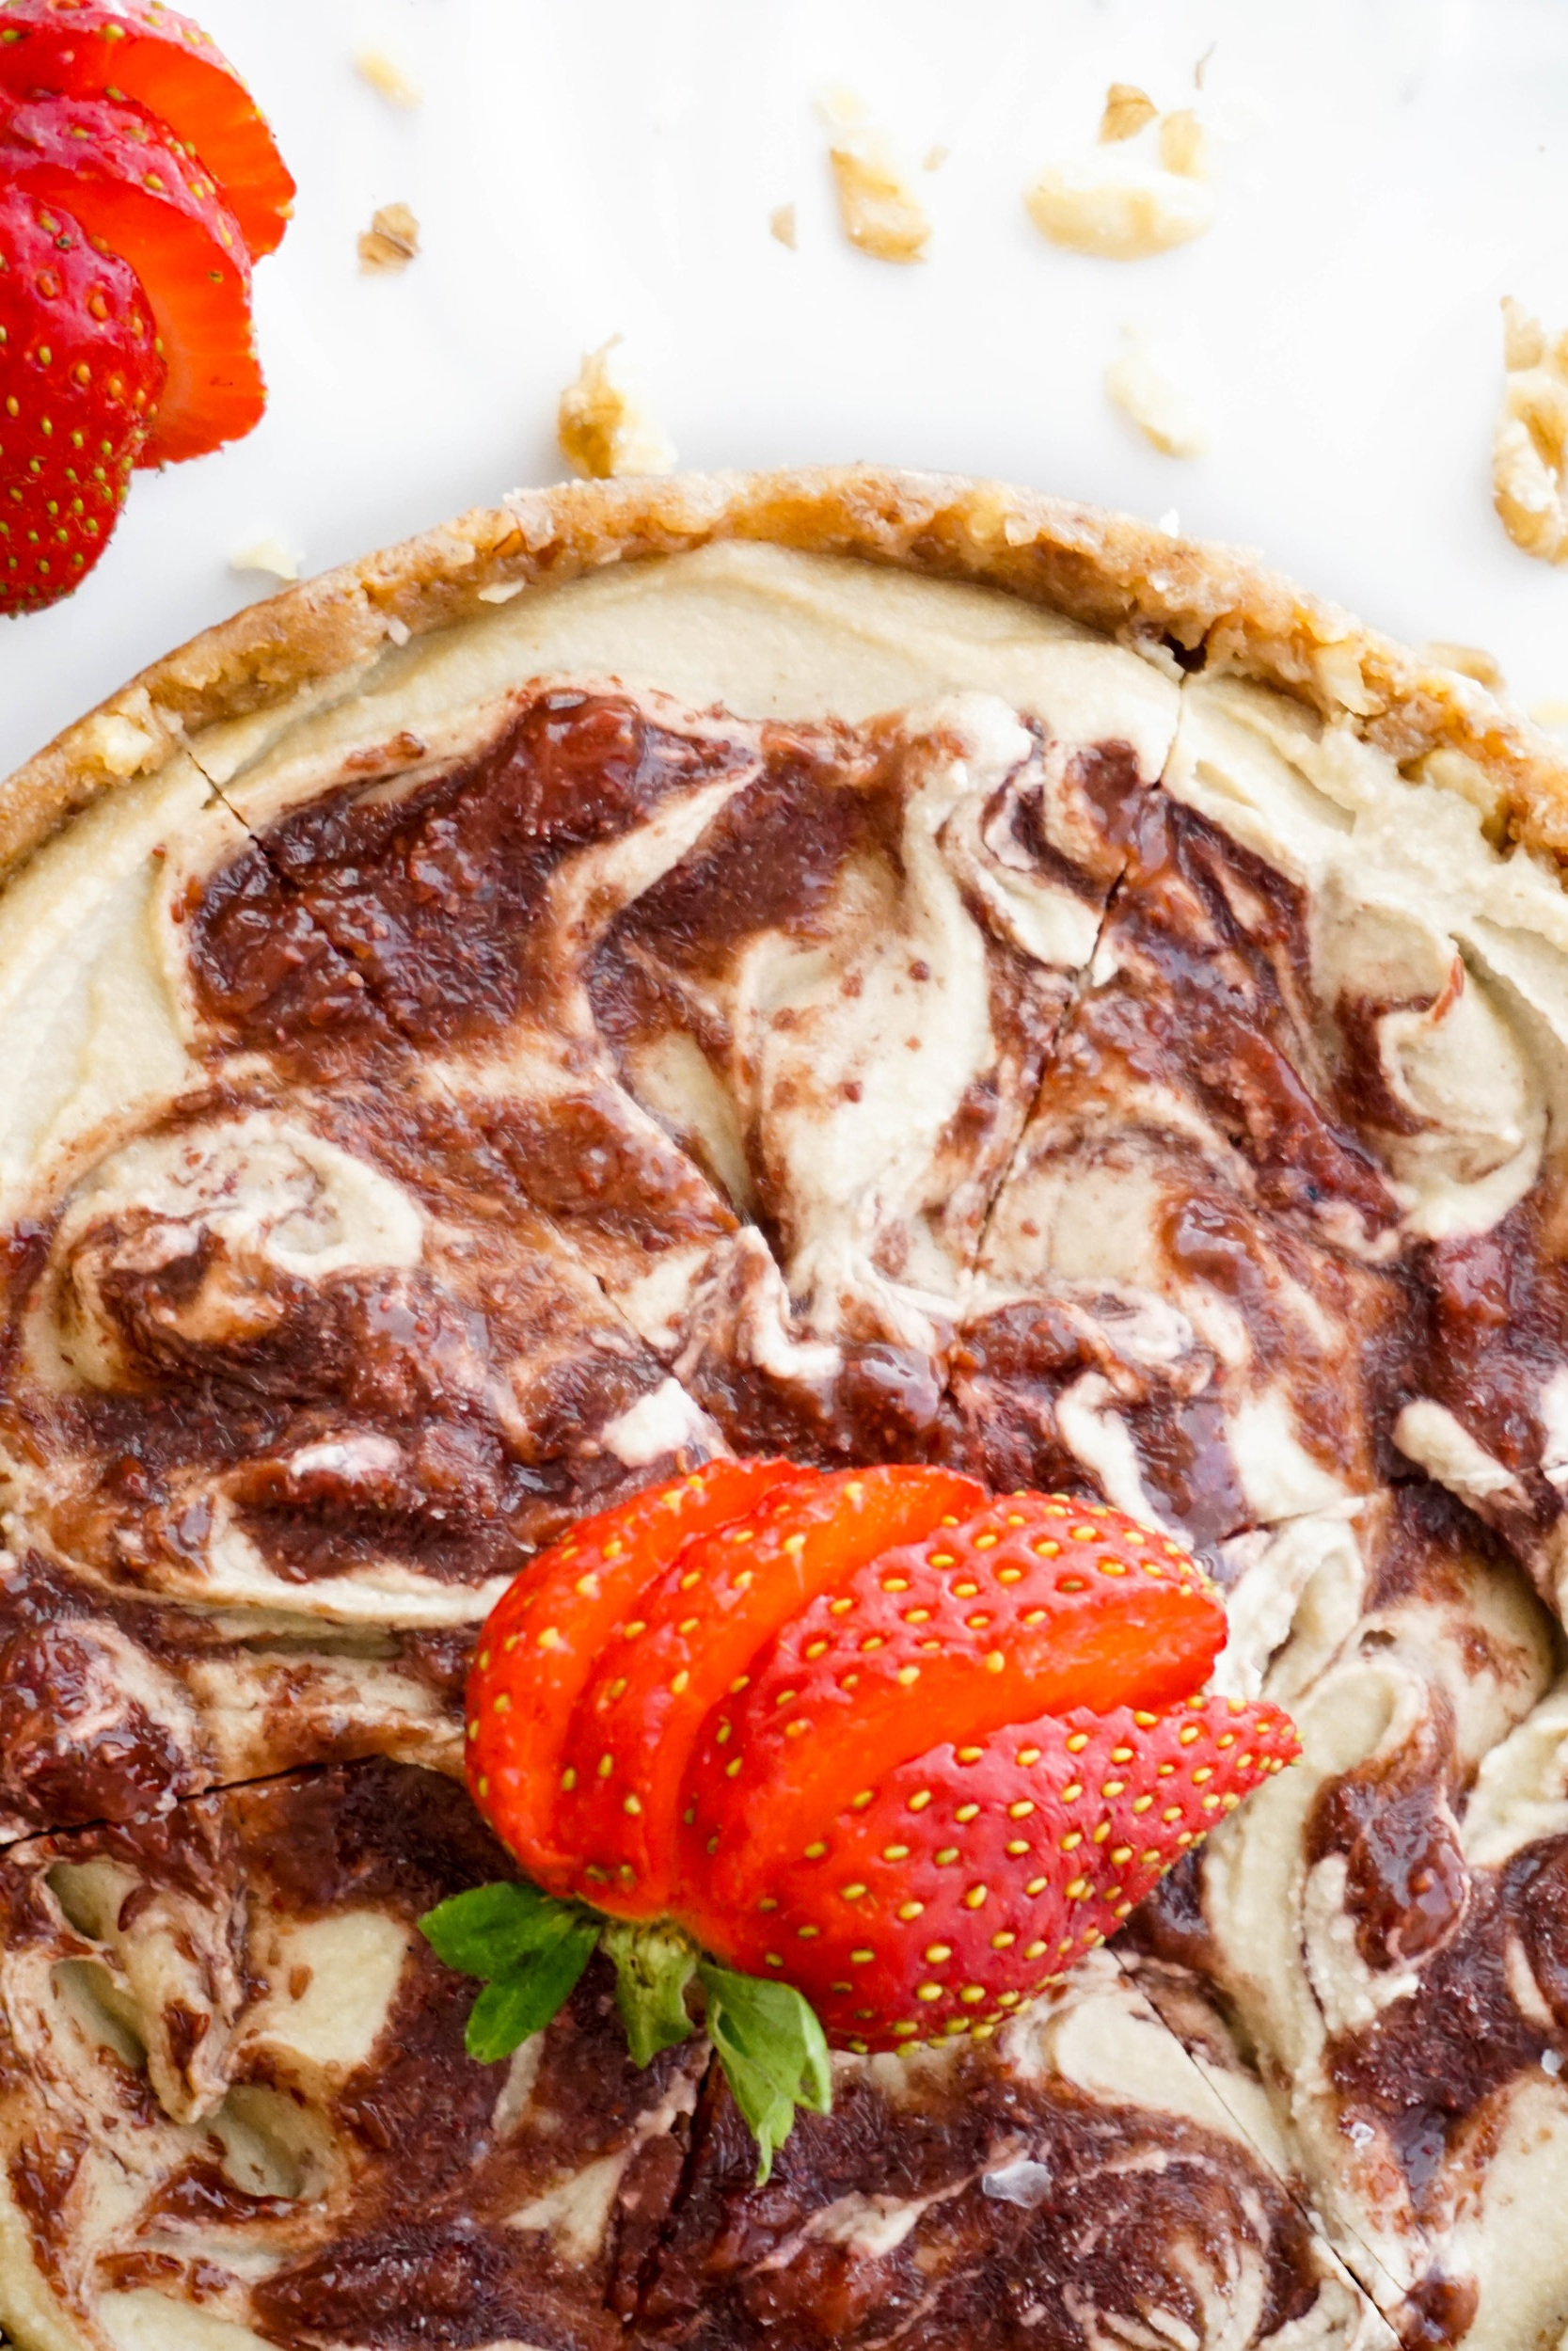 Strawberry Swirl Cheesecake (V, GF)